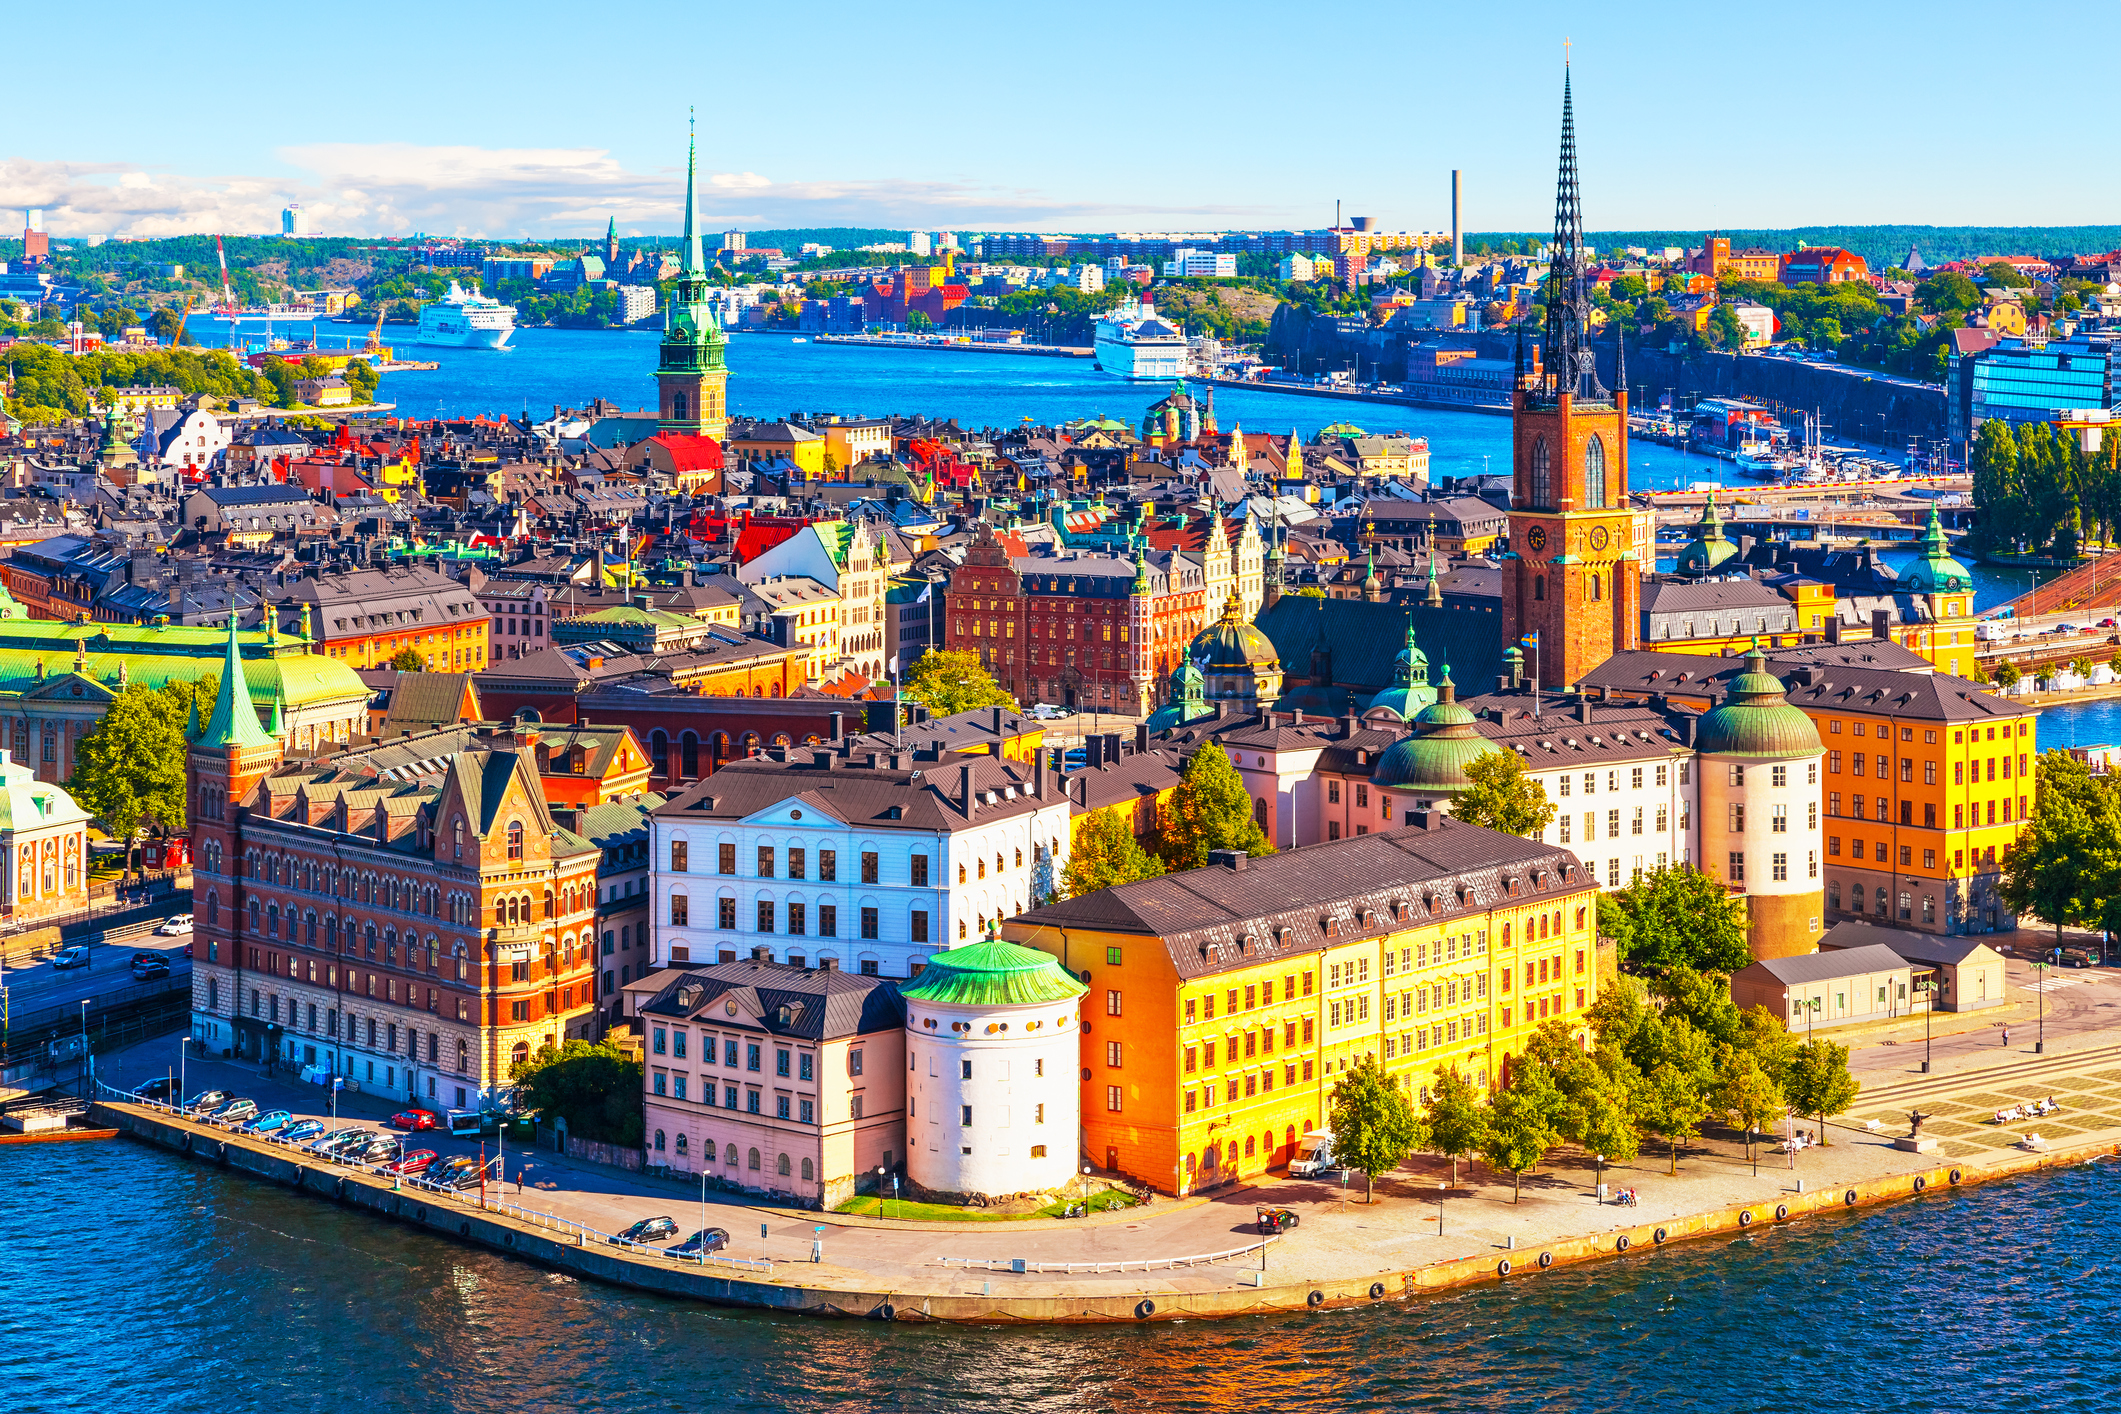 SCANDINAVIA 2019 - IN PARTNERSHIP WITH UNCG'S EMERITUS SOCIETY PROGRAMGUEST LECTURER DR. HEPSIE ROSKELLY